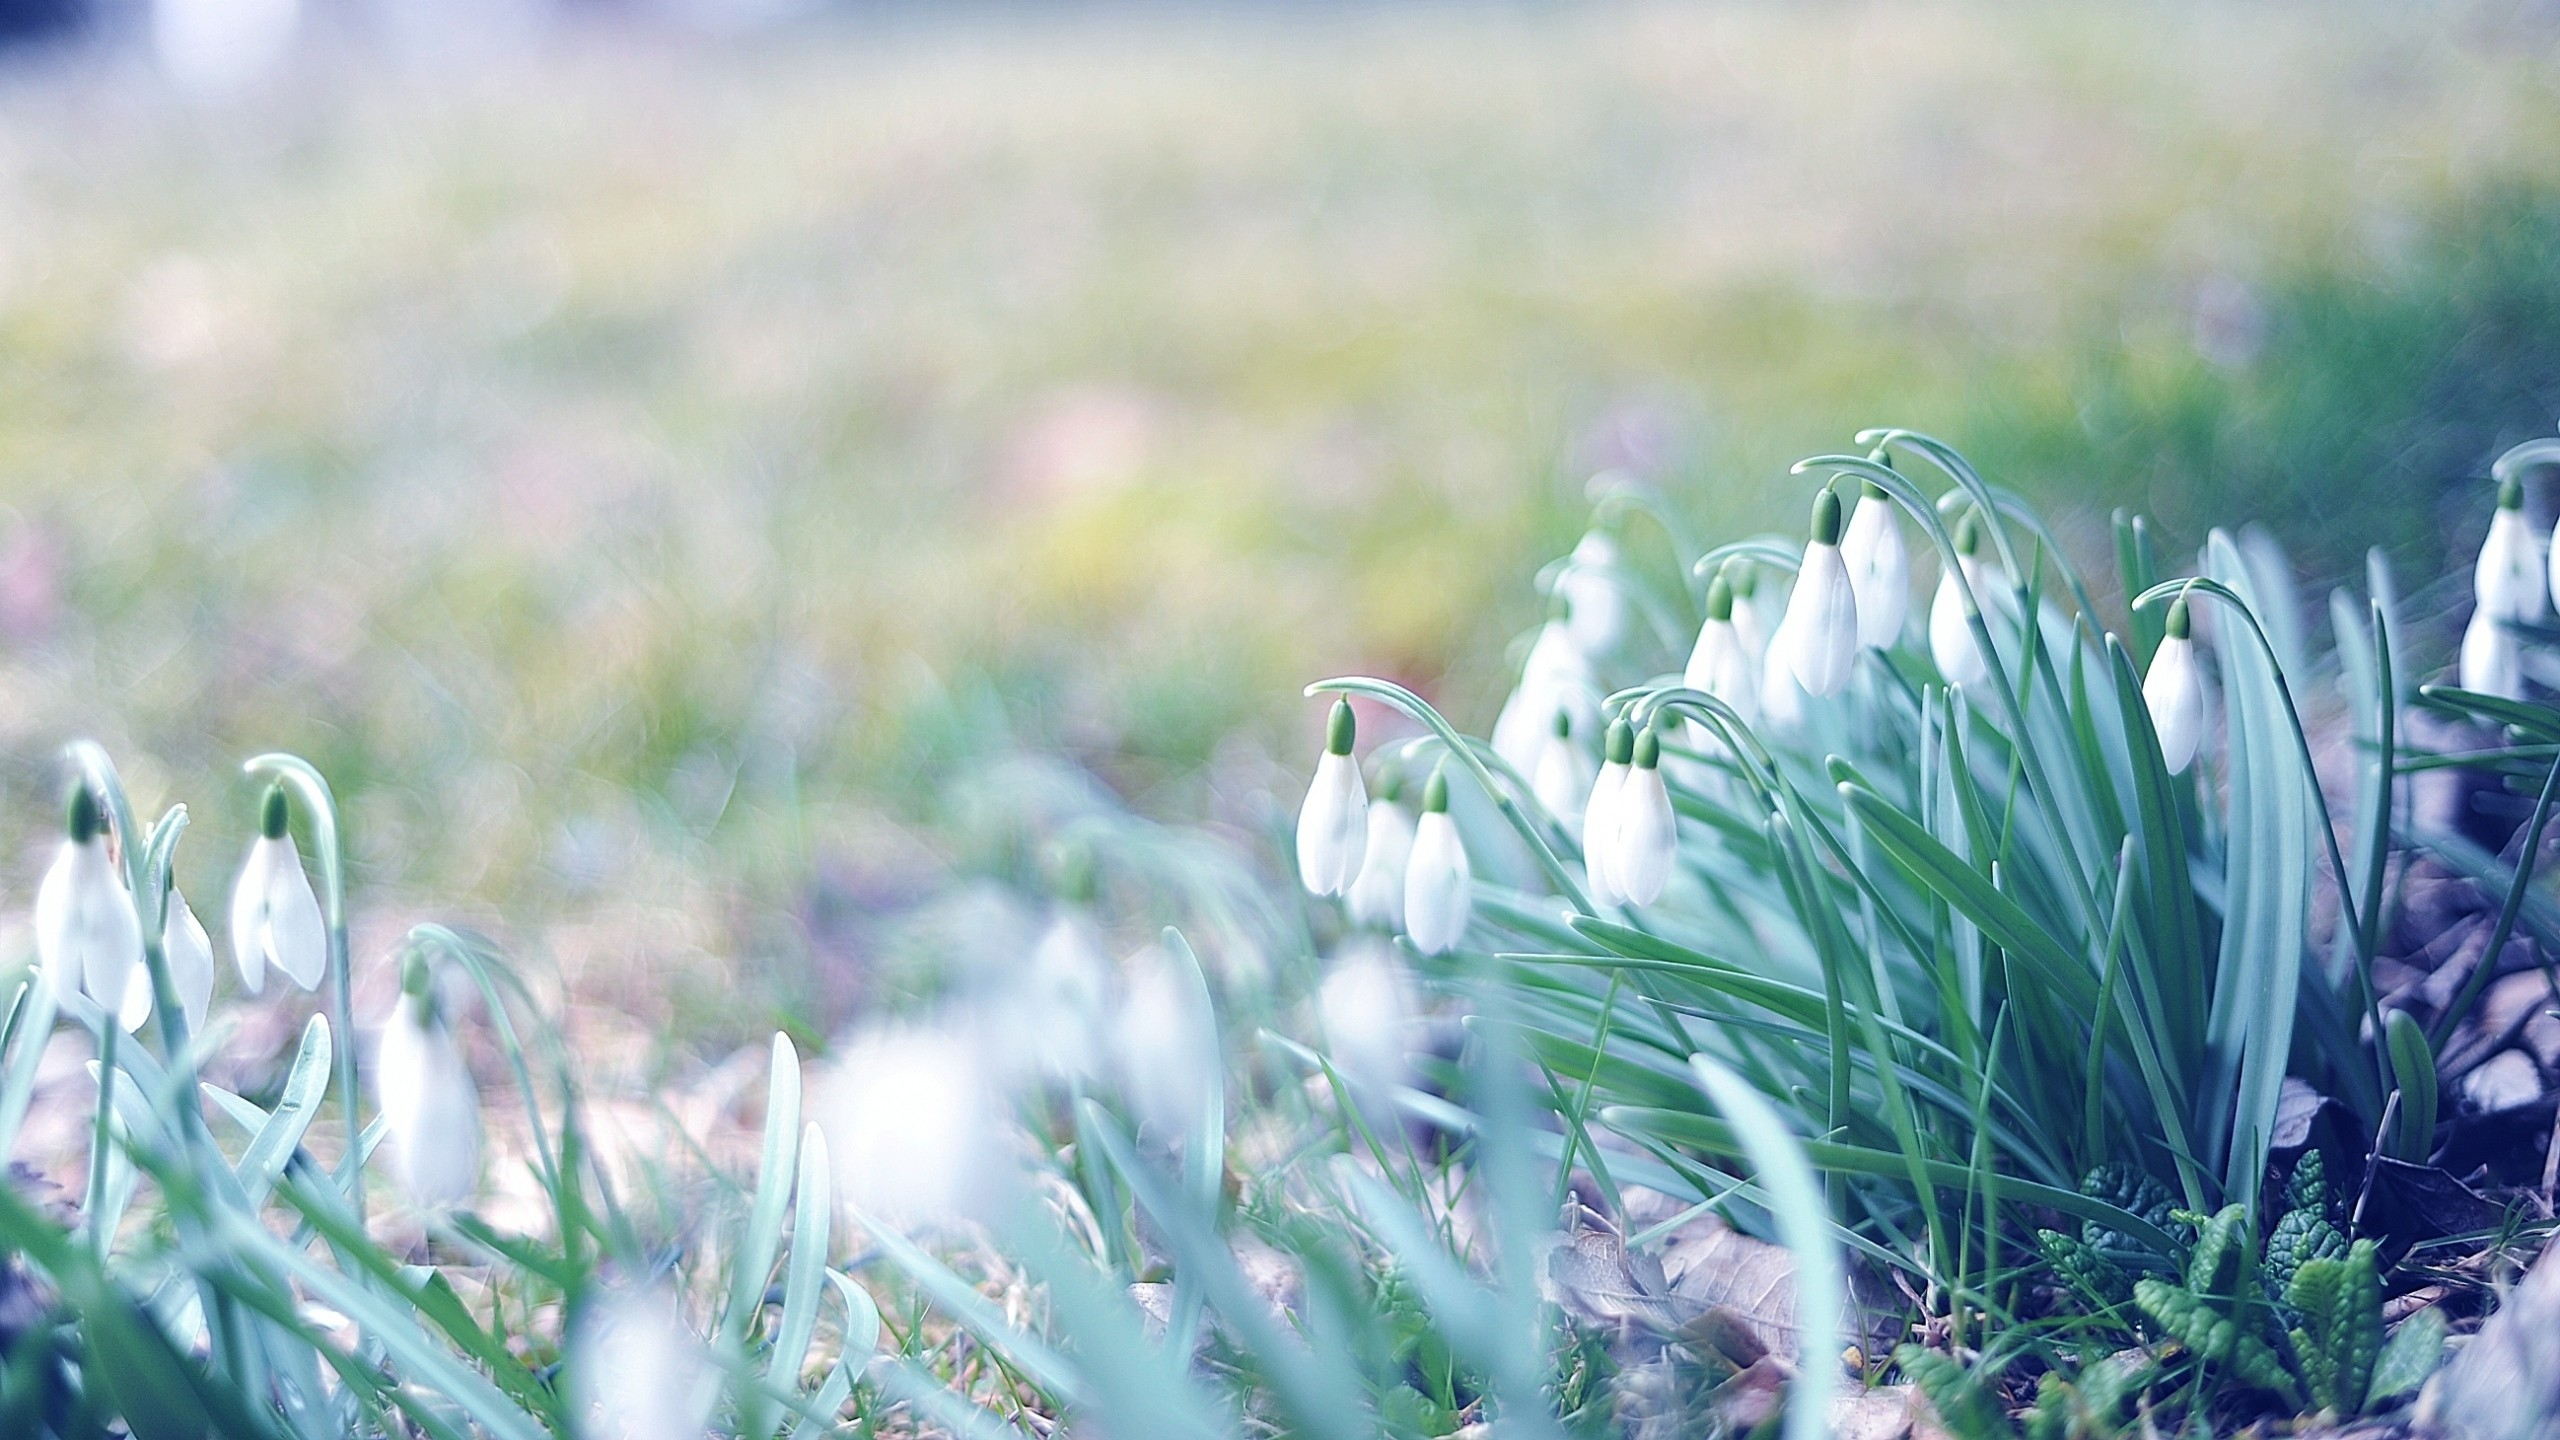 2560x1440 Preview Wallpaper Spring Snowdrops Grass Light March